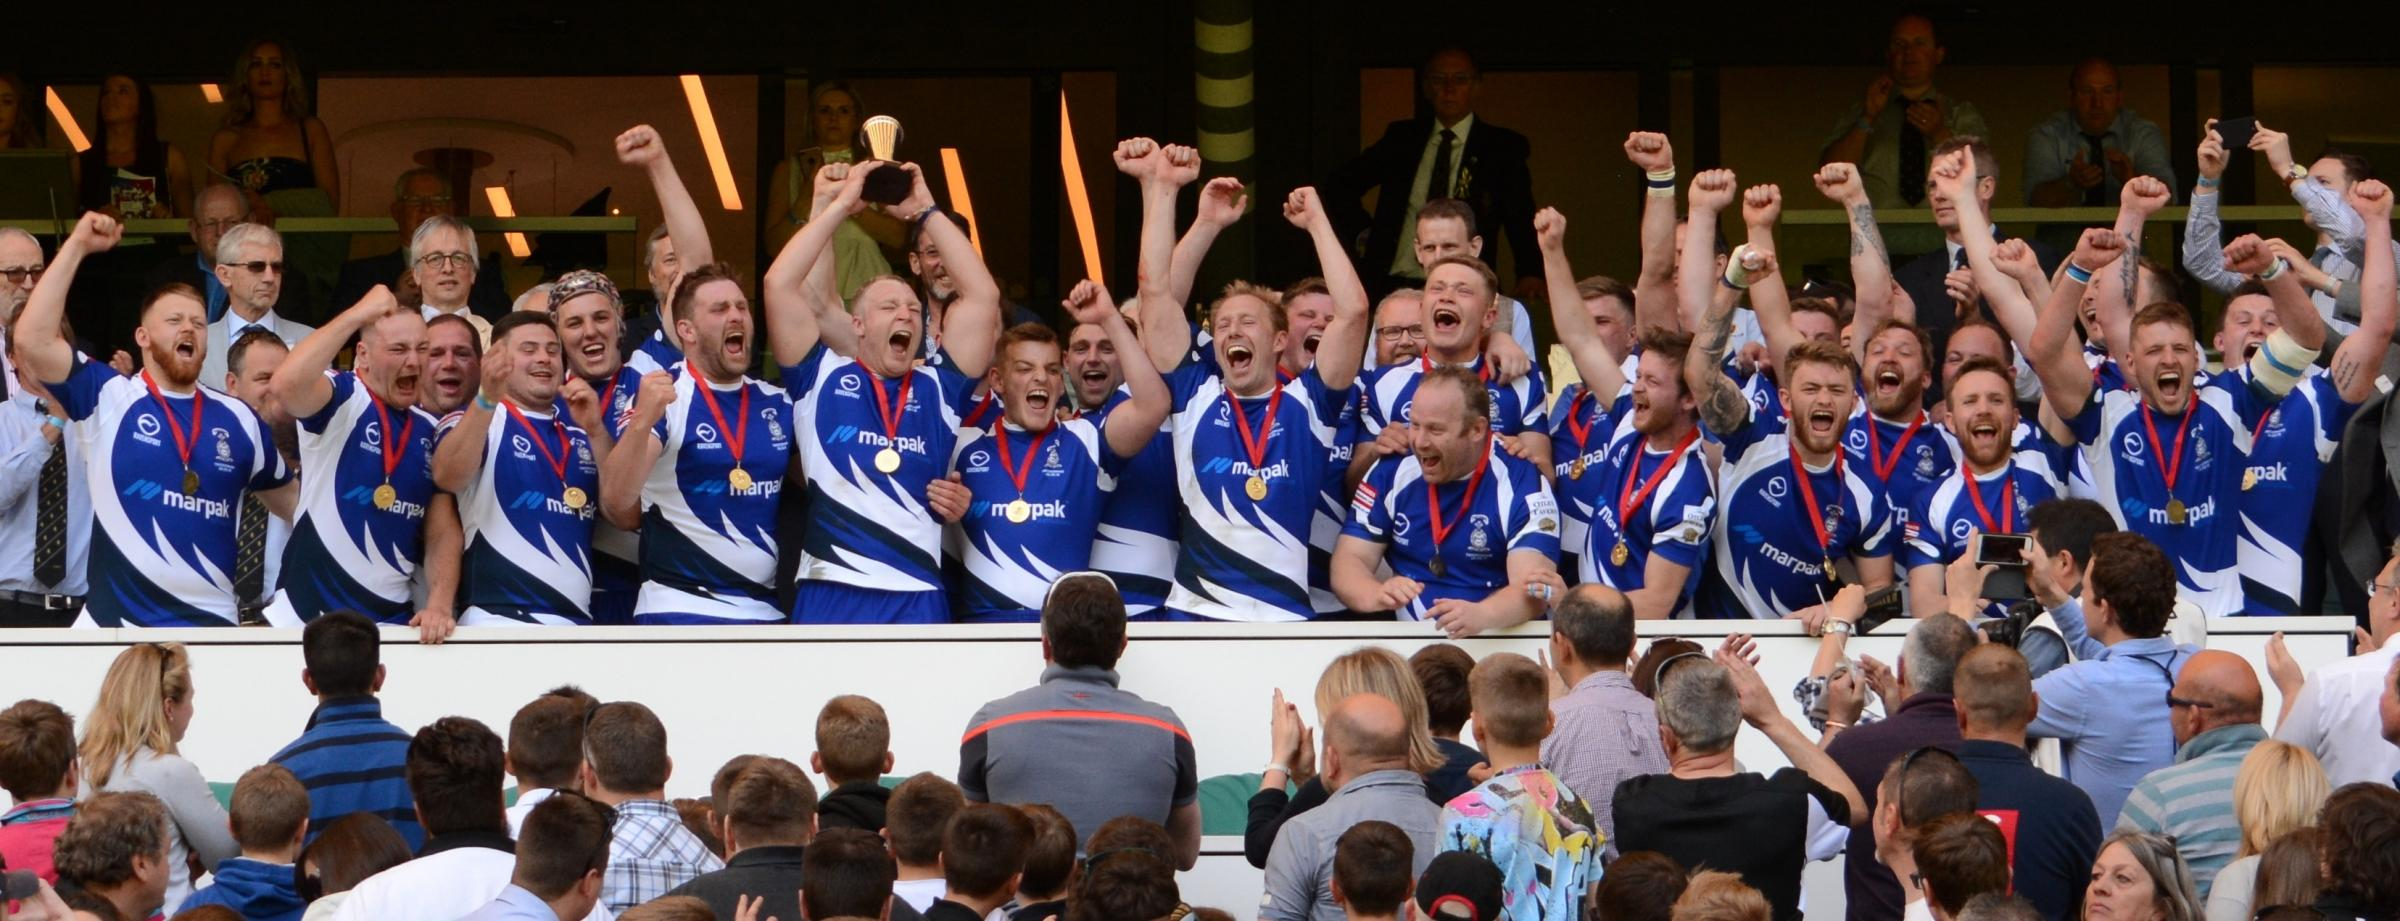 Old Otliensians celebrate their Junior Vase success at Twickenham - the achievement has seen their coaches nominated for a prestigious award